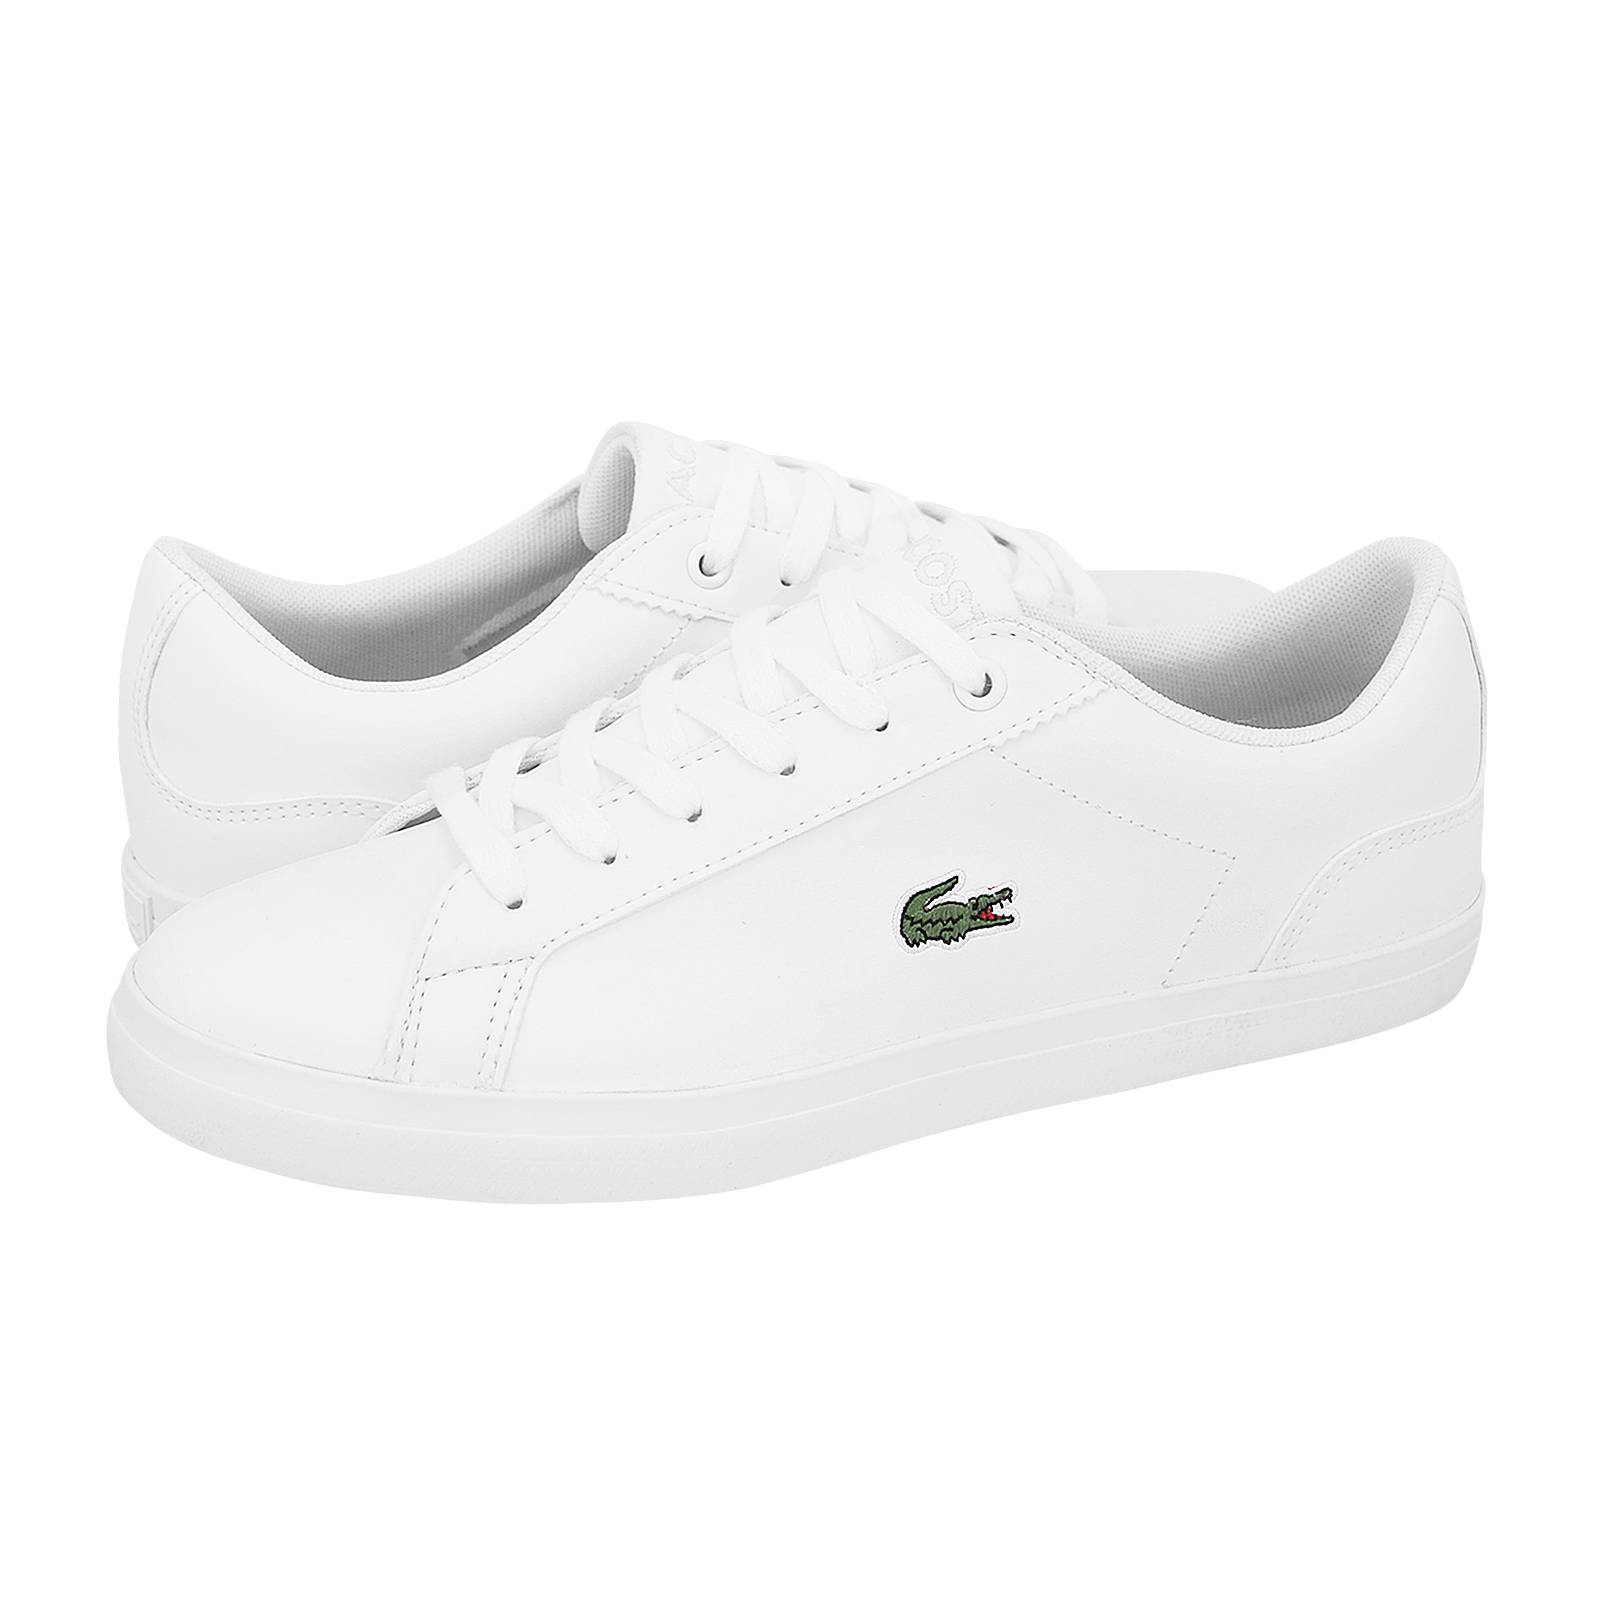 c9f161950 Lerond 119 5 CUJ - Lacoste Casual kids  shoes made of synthetic ...